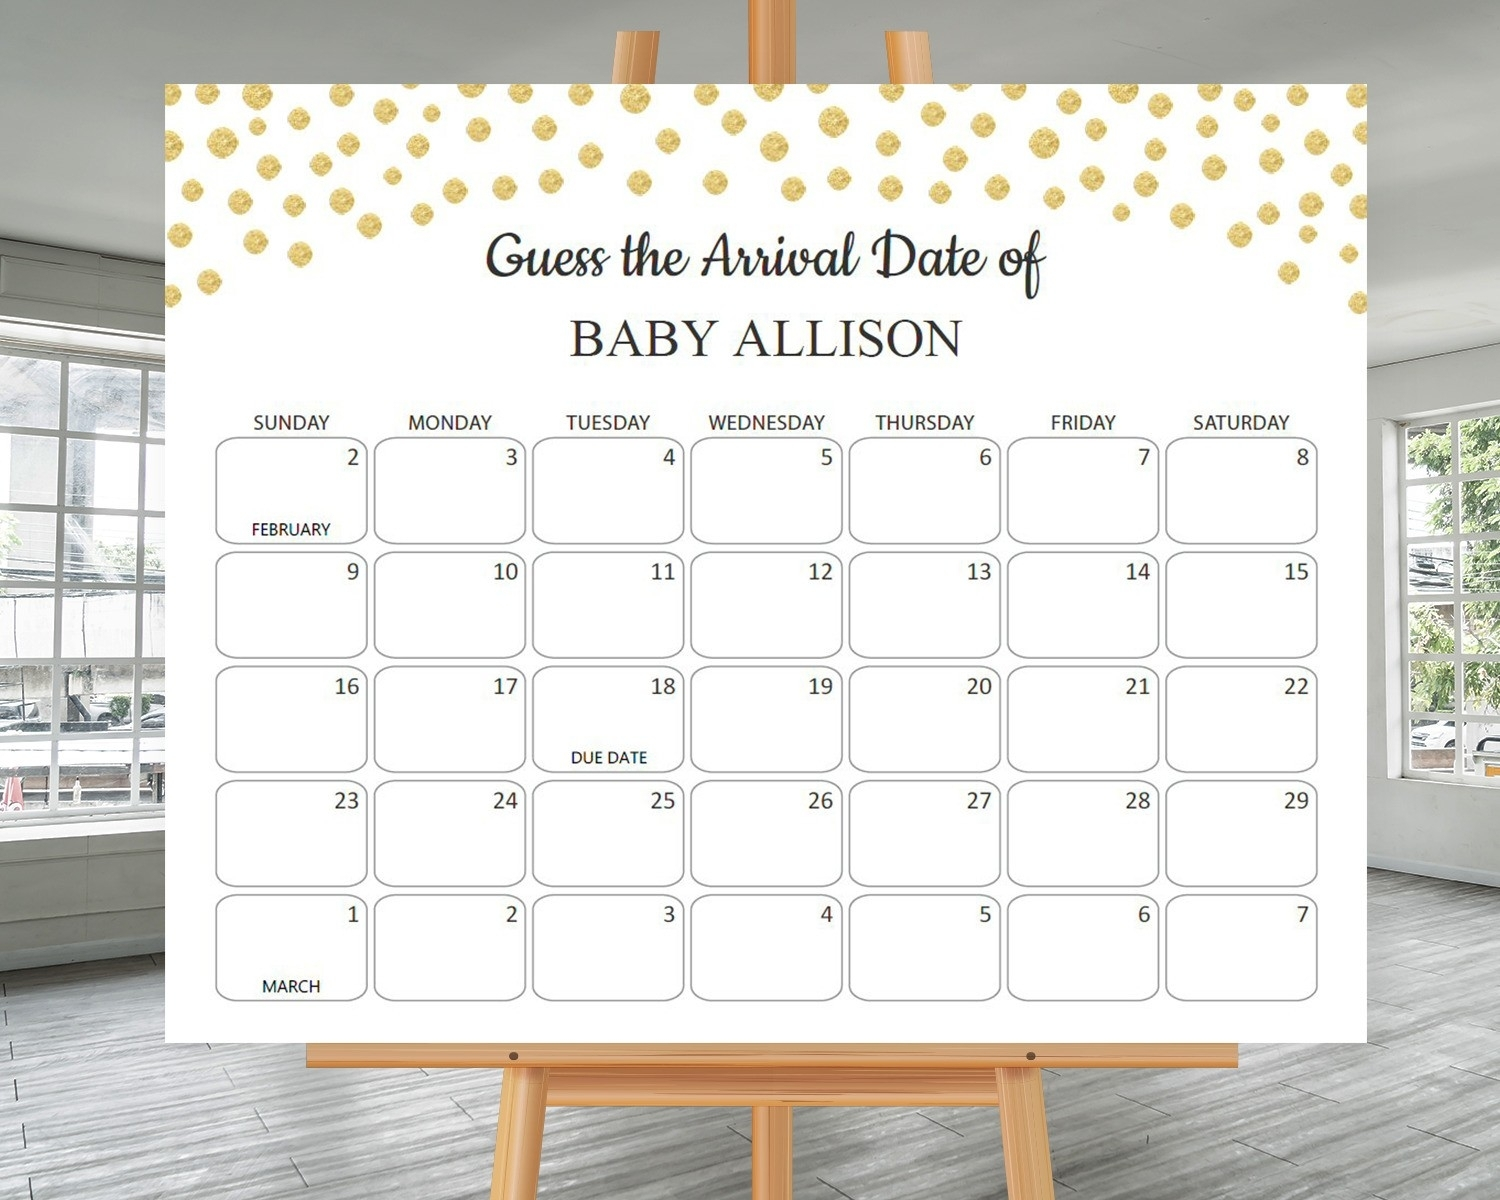 Baby Due Date Prediction Calendar Game